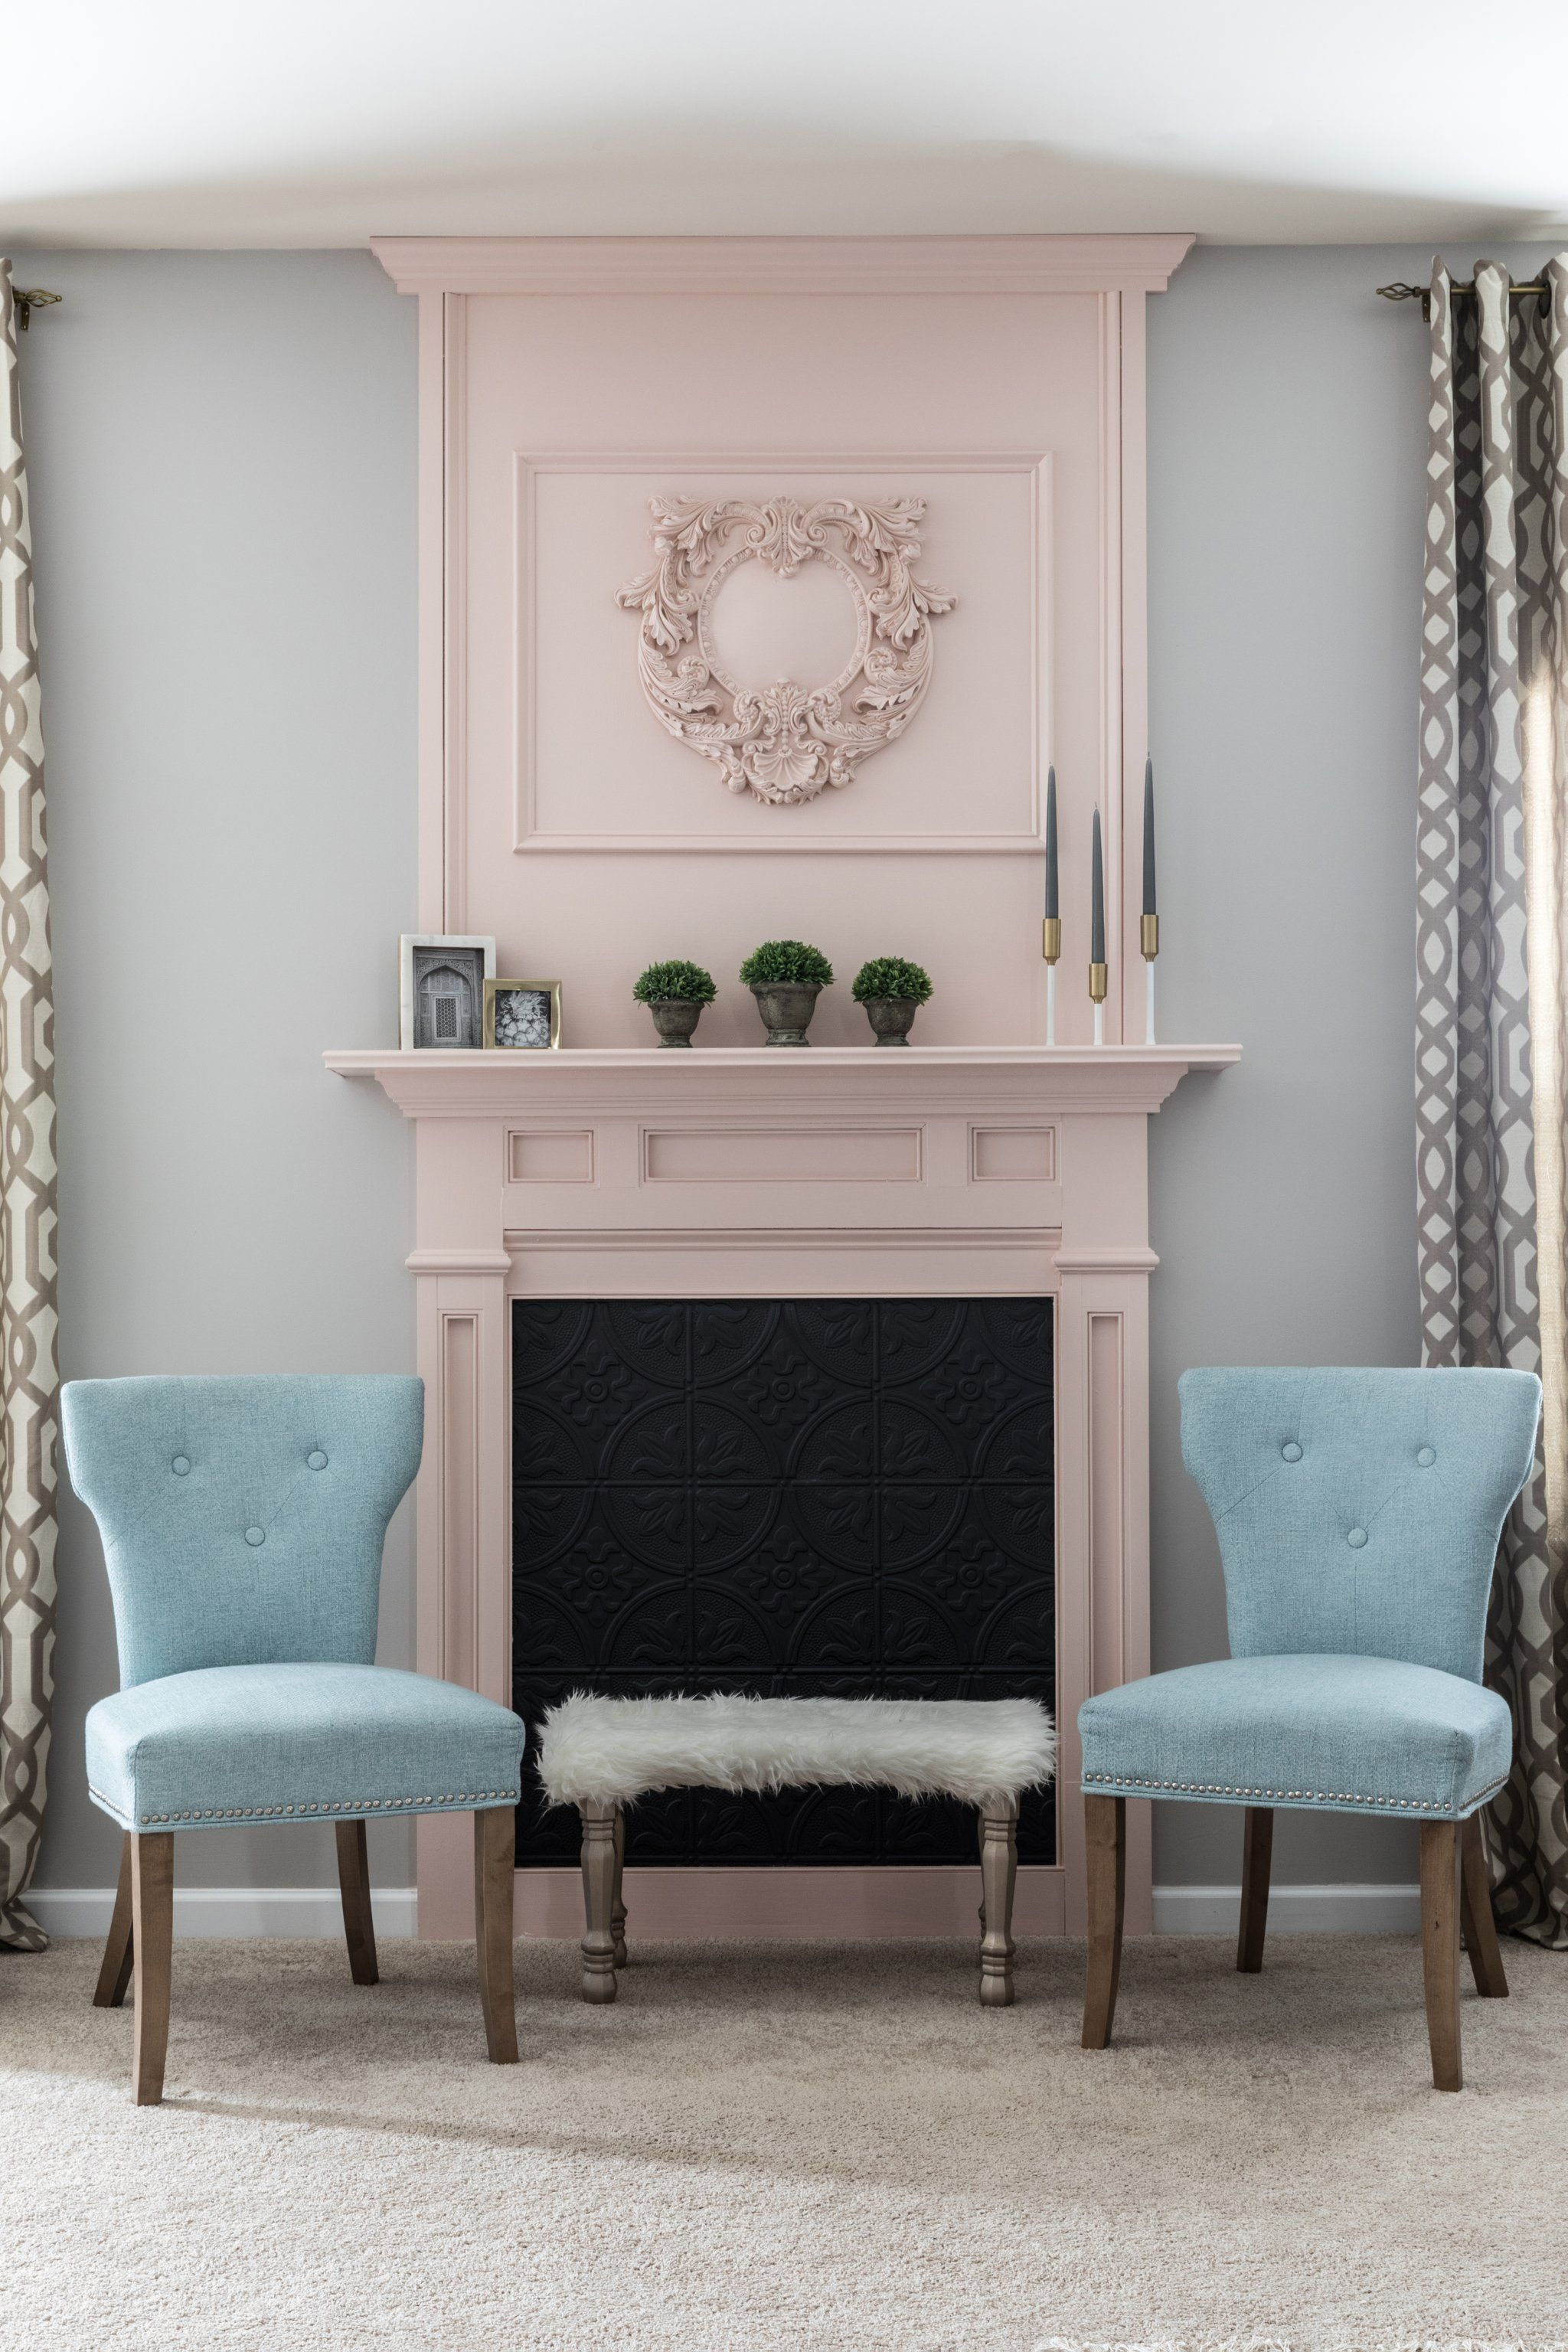 Monica created a stunning focal point from scratch by installing a faux fireplace. She painted it a subtly ...